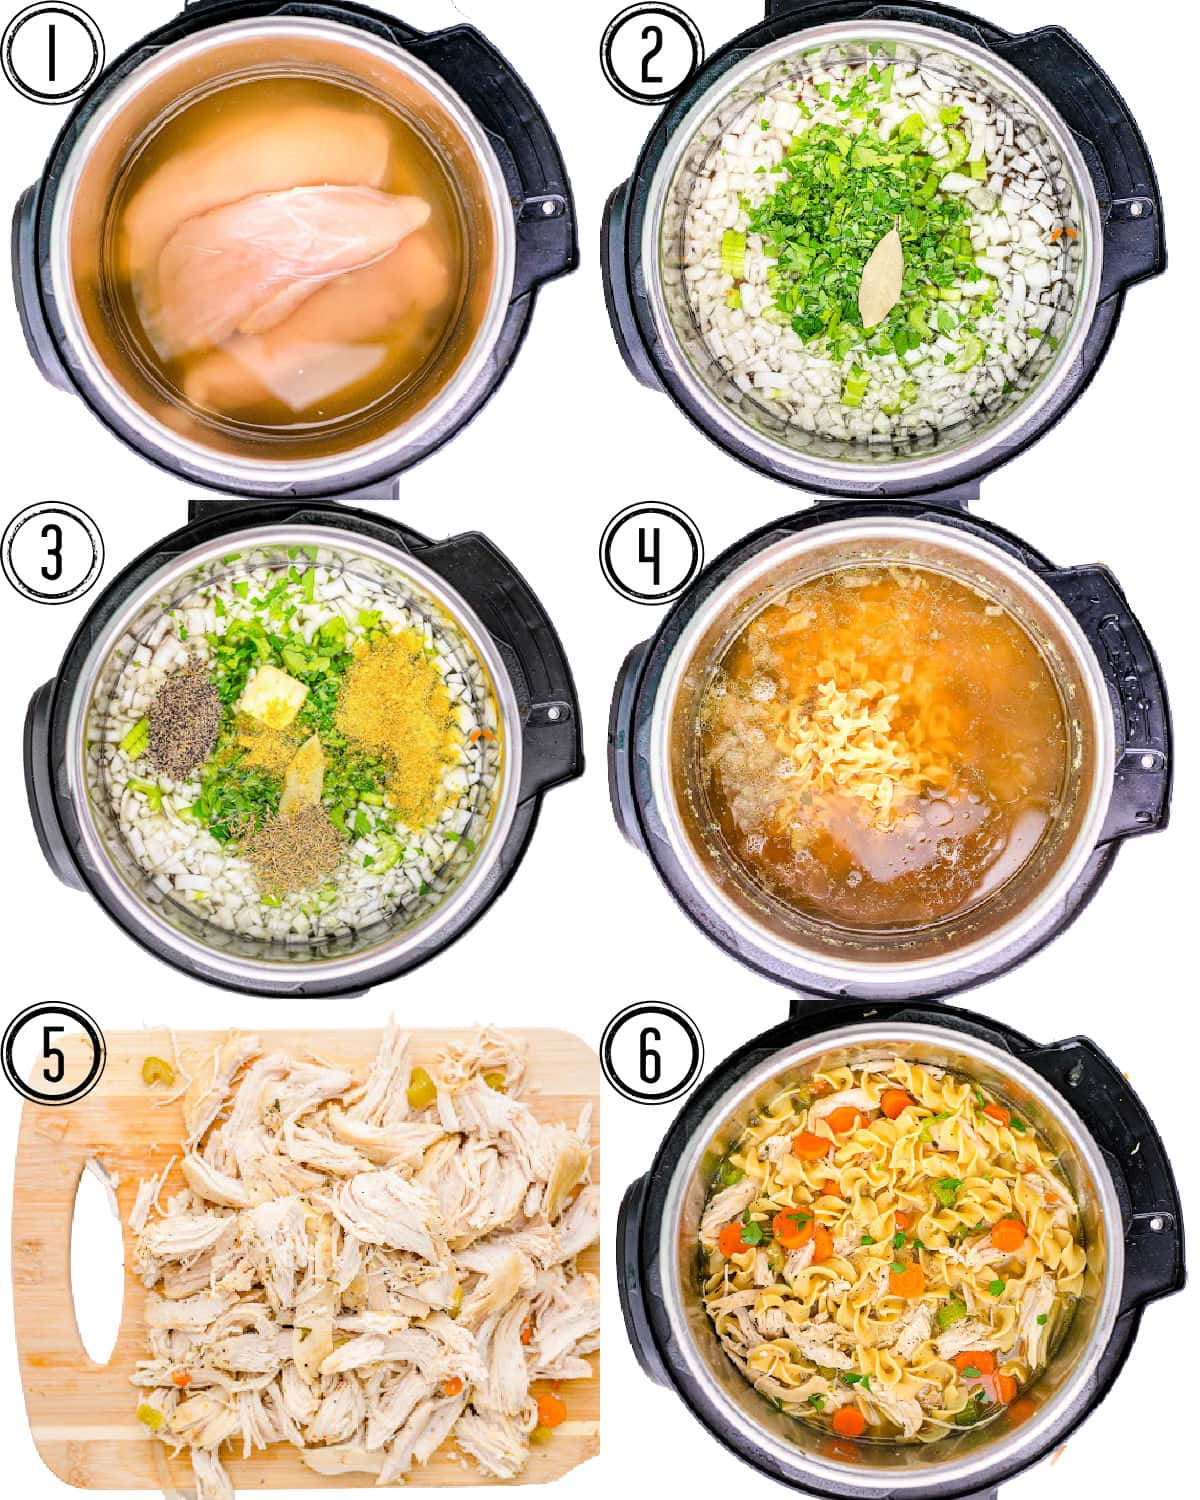 six image collage showing the easy steps of how to make instant pot chicken noodle soup.